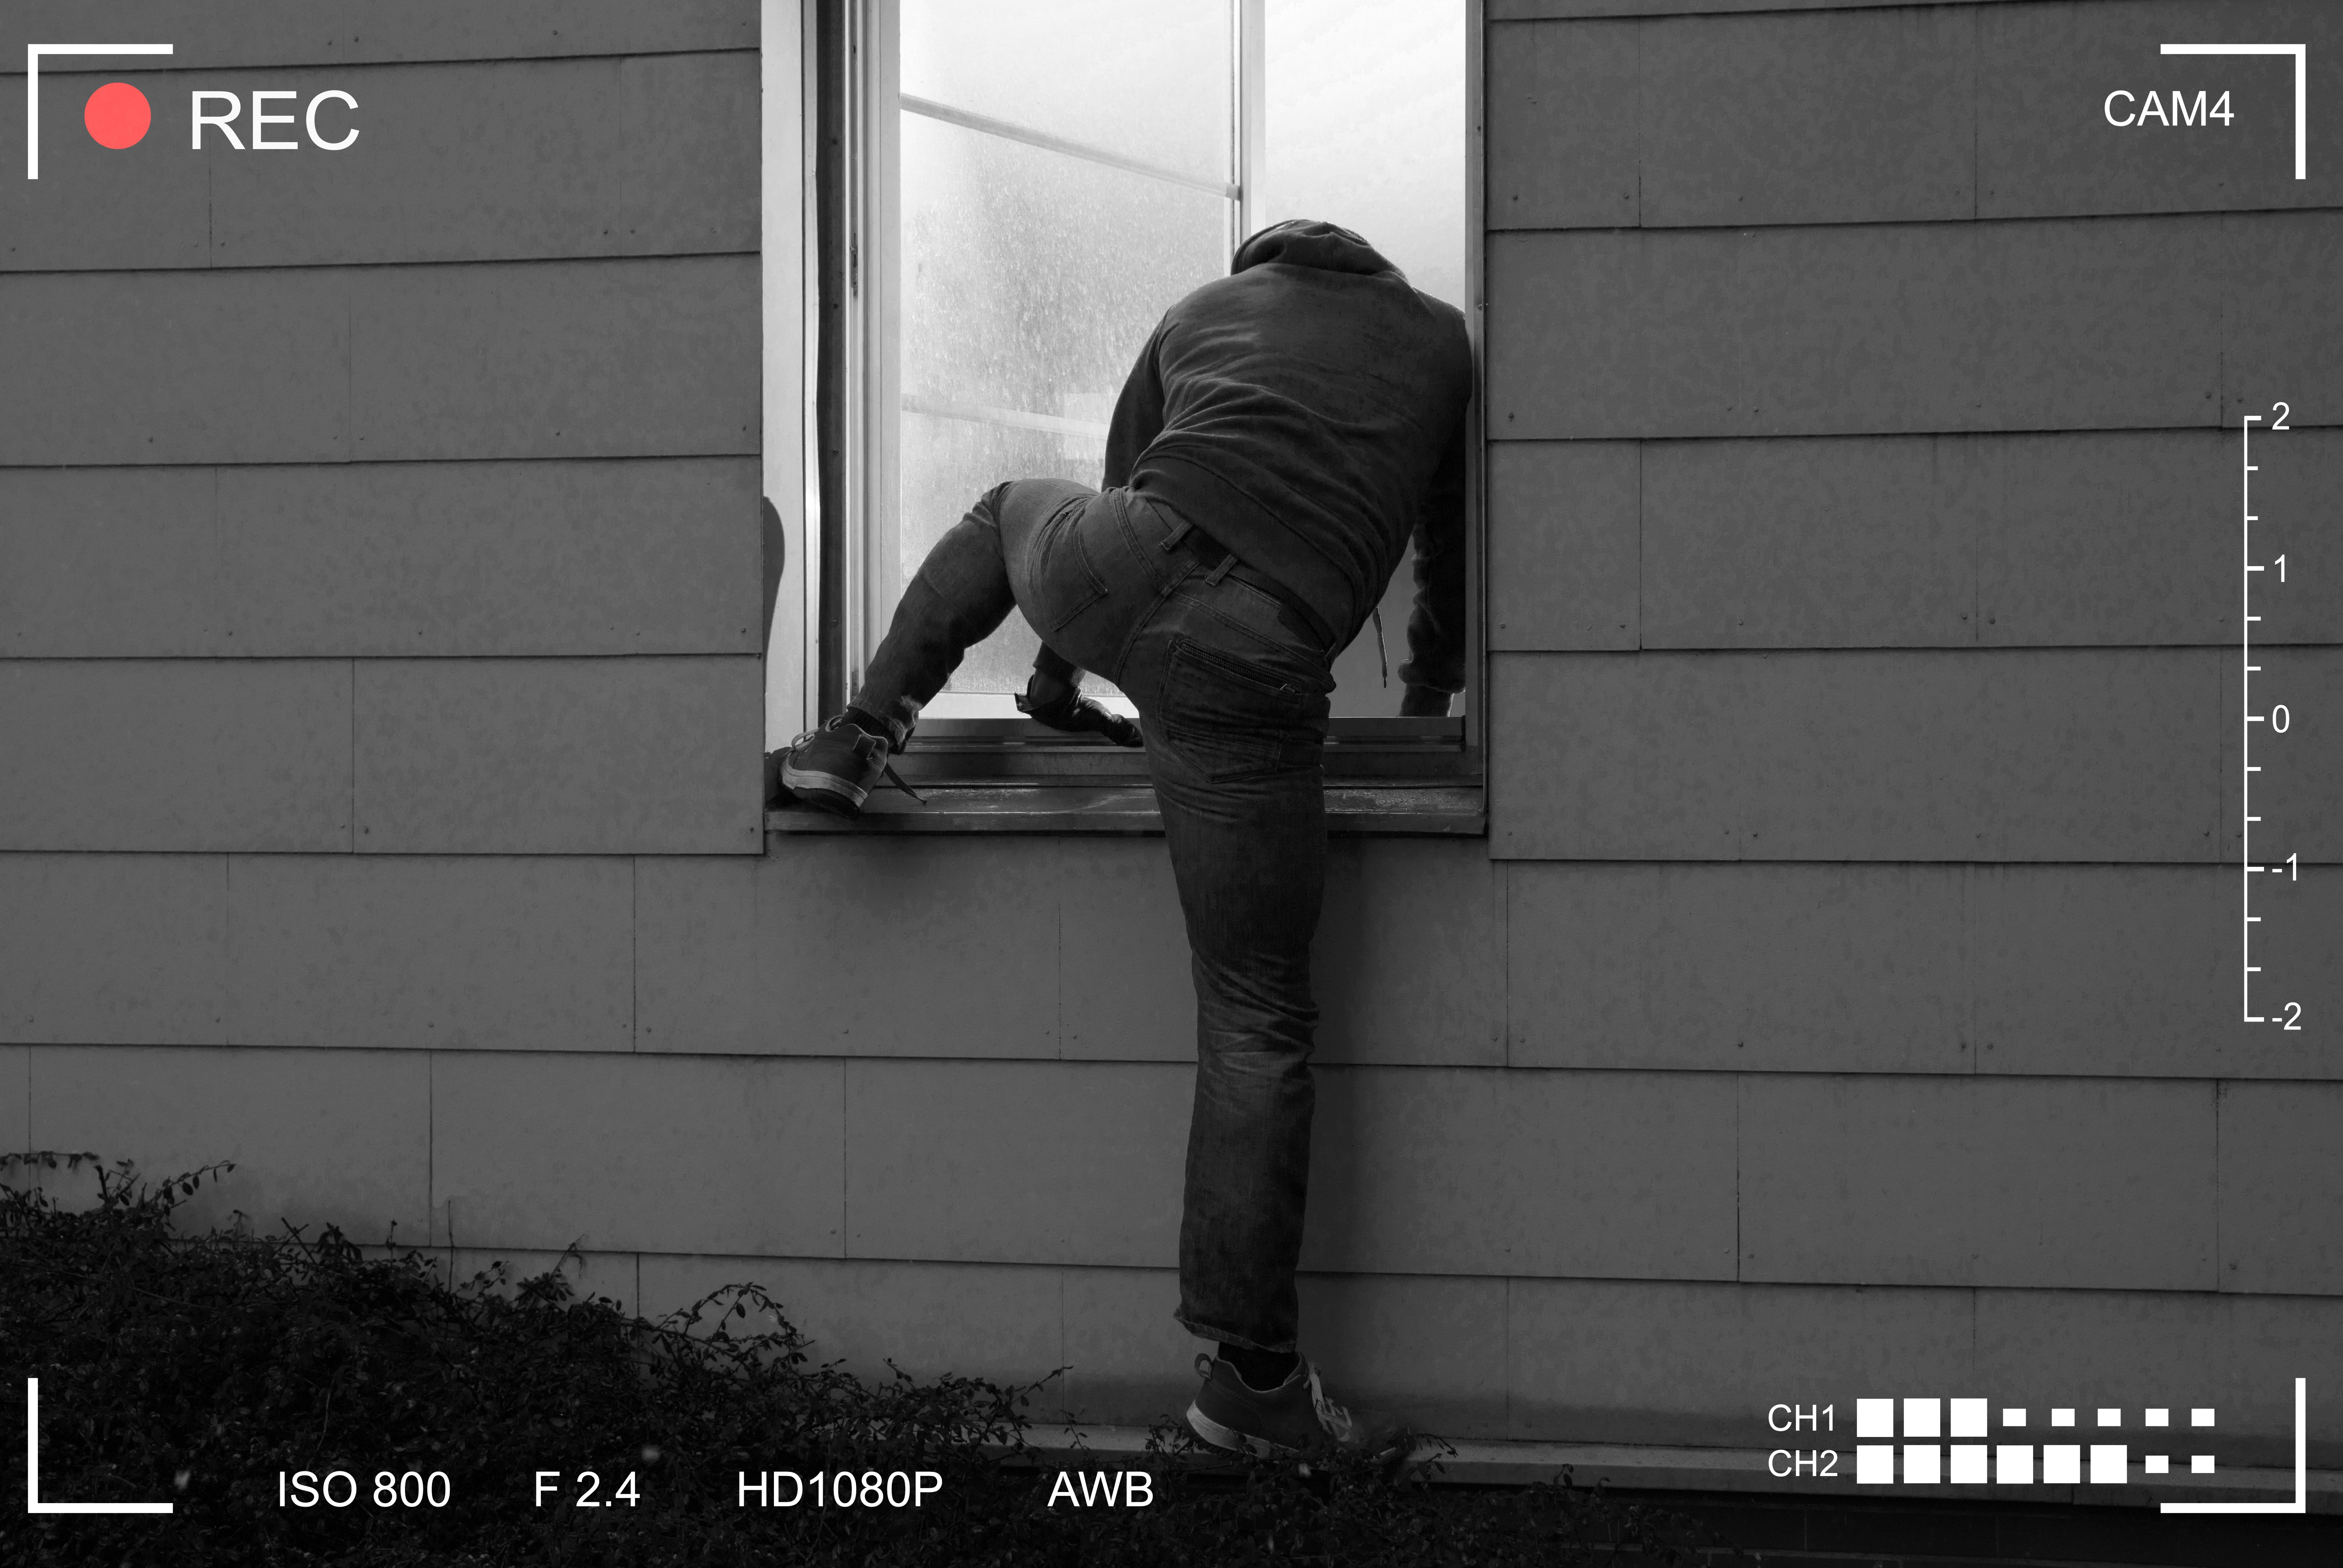 Thief is caught on camera as he attempts to break into a house via a window   Photo: Shutterstock/Andrey_Popov